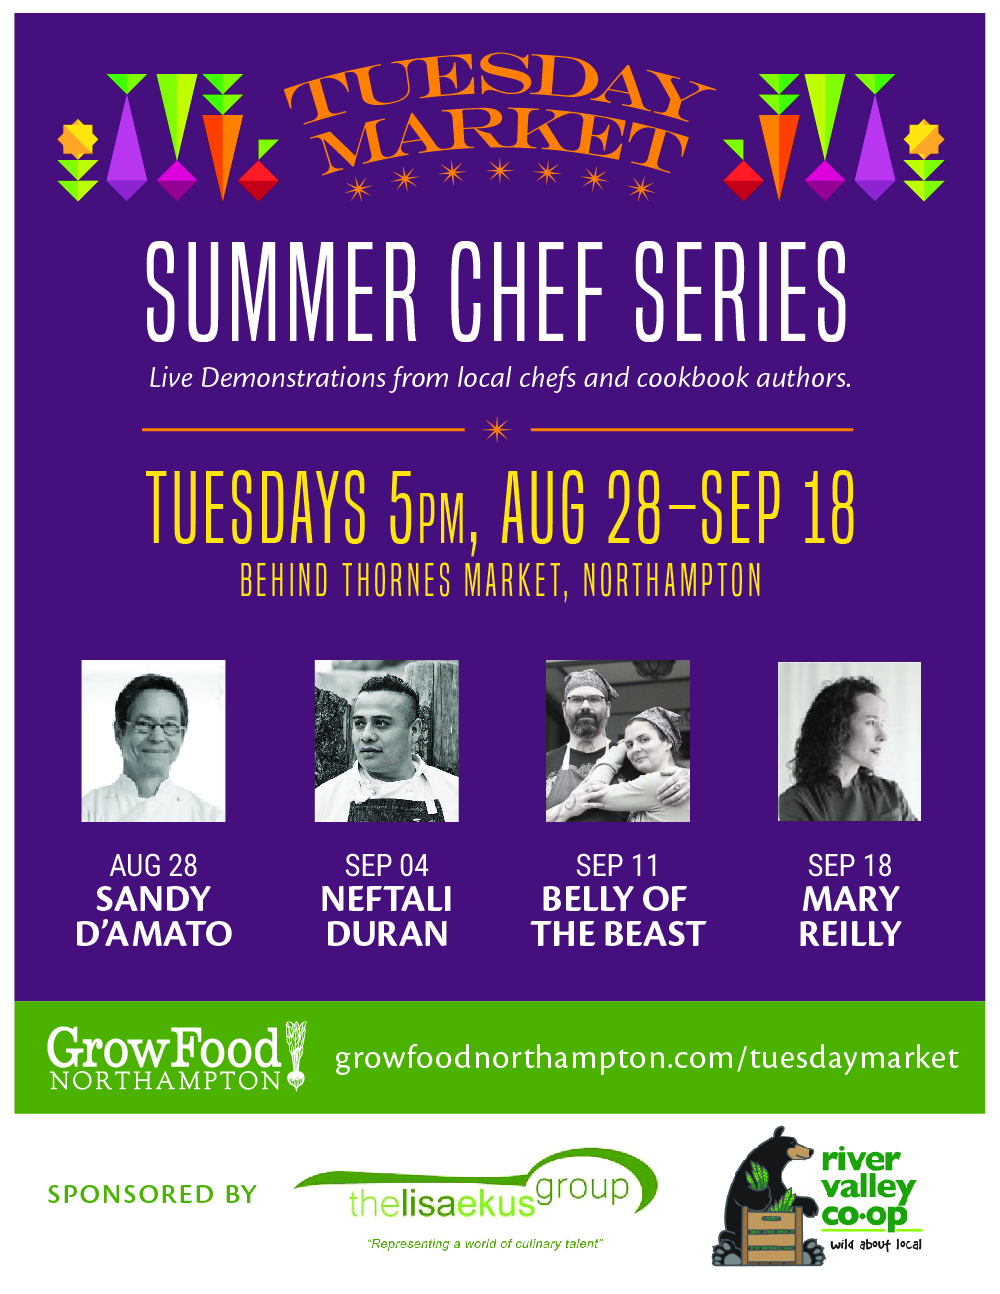 2018 Tuesday Market Summer Chef Series